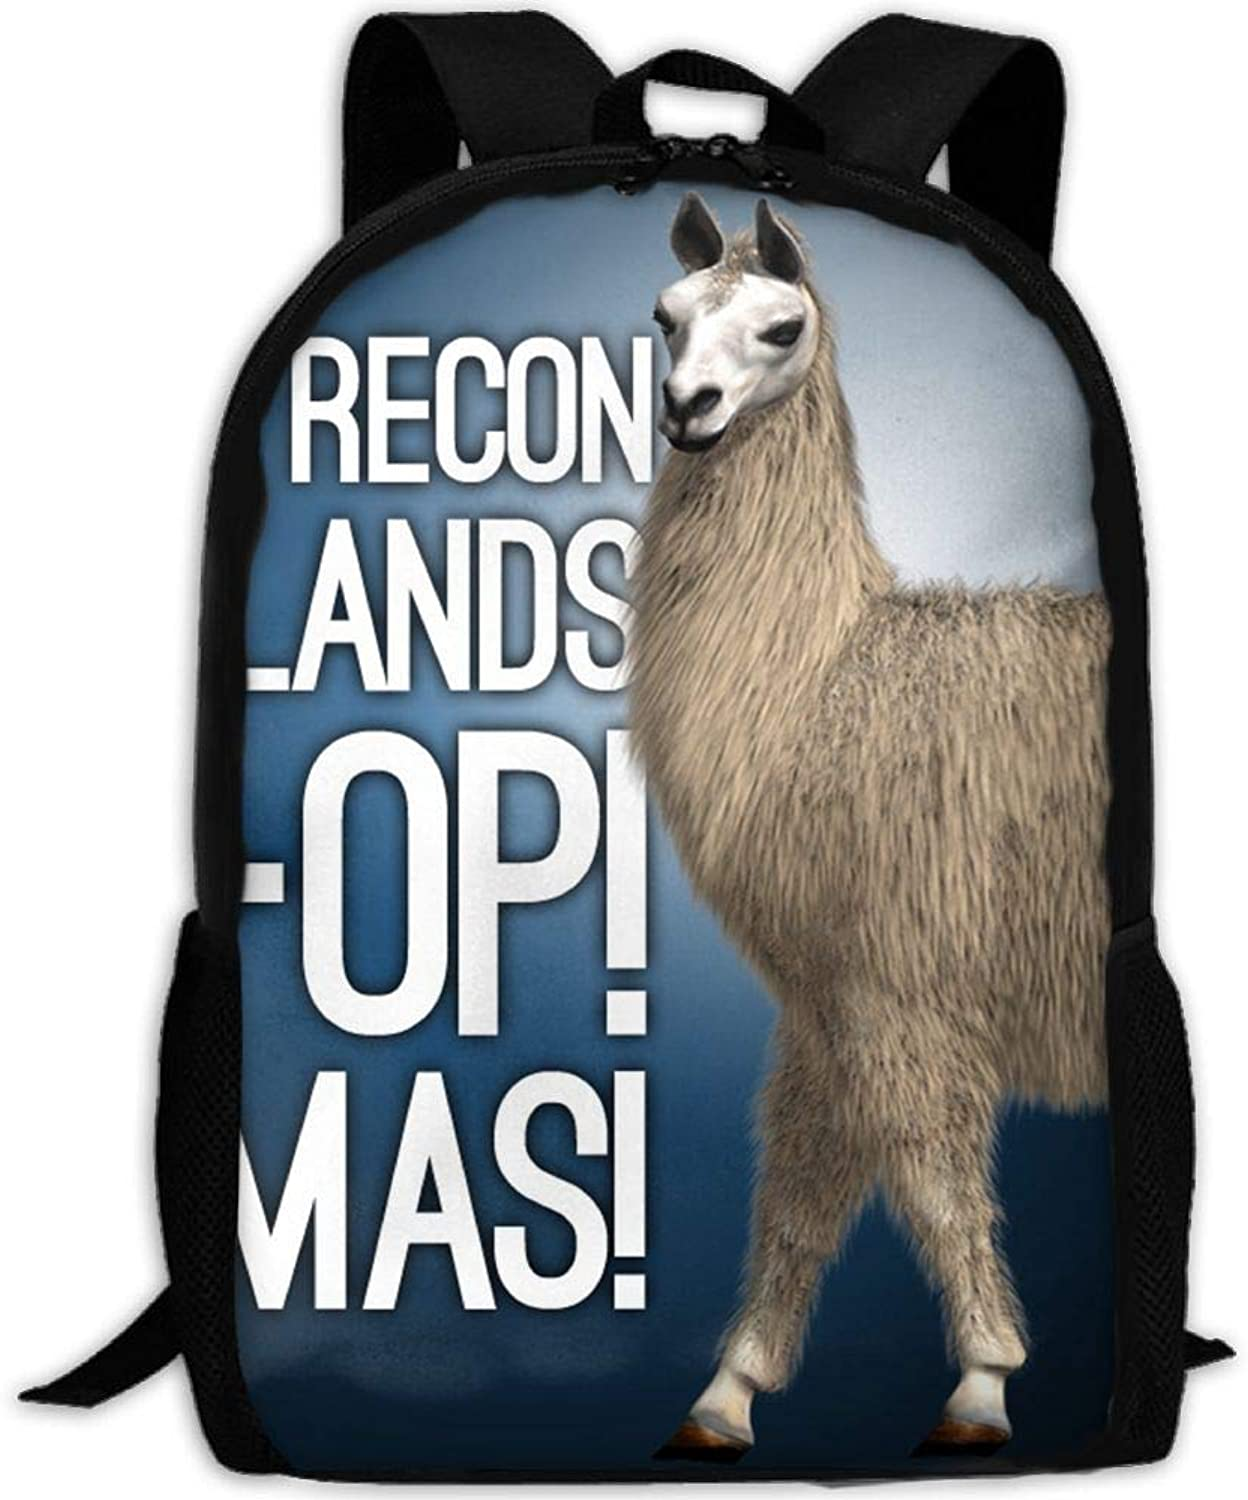 Student Backpack, Backpack, Backpack, School Backpack for Laptop,Most Durable Lightweight Cute Travel Water Resistant School Backpack - Cute Llama Alpaca B07PSFLYGS  Wertvolle Boutique 0e55e4